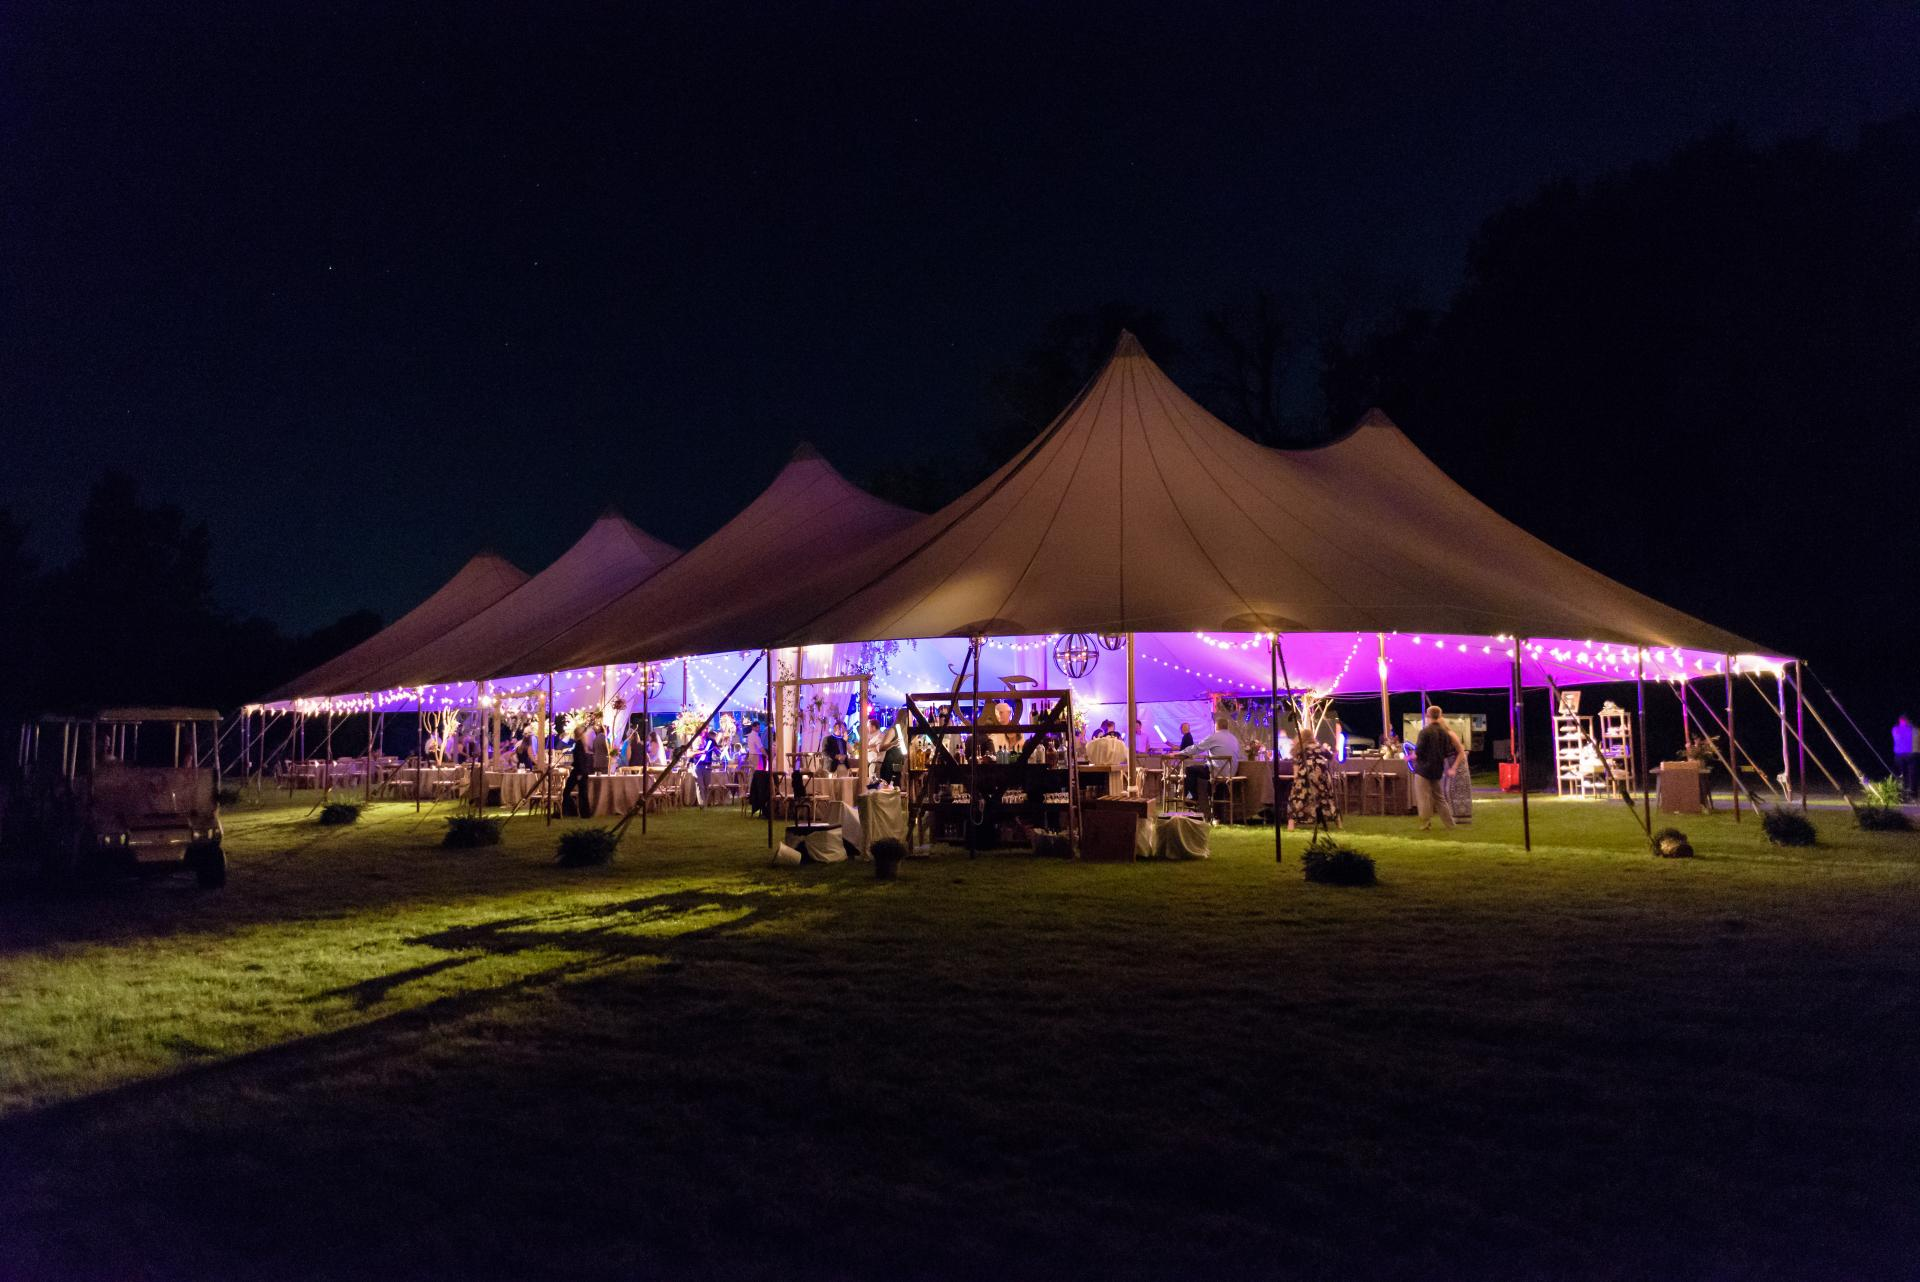 Sailcloth Tent Wedding at Night